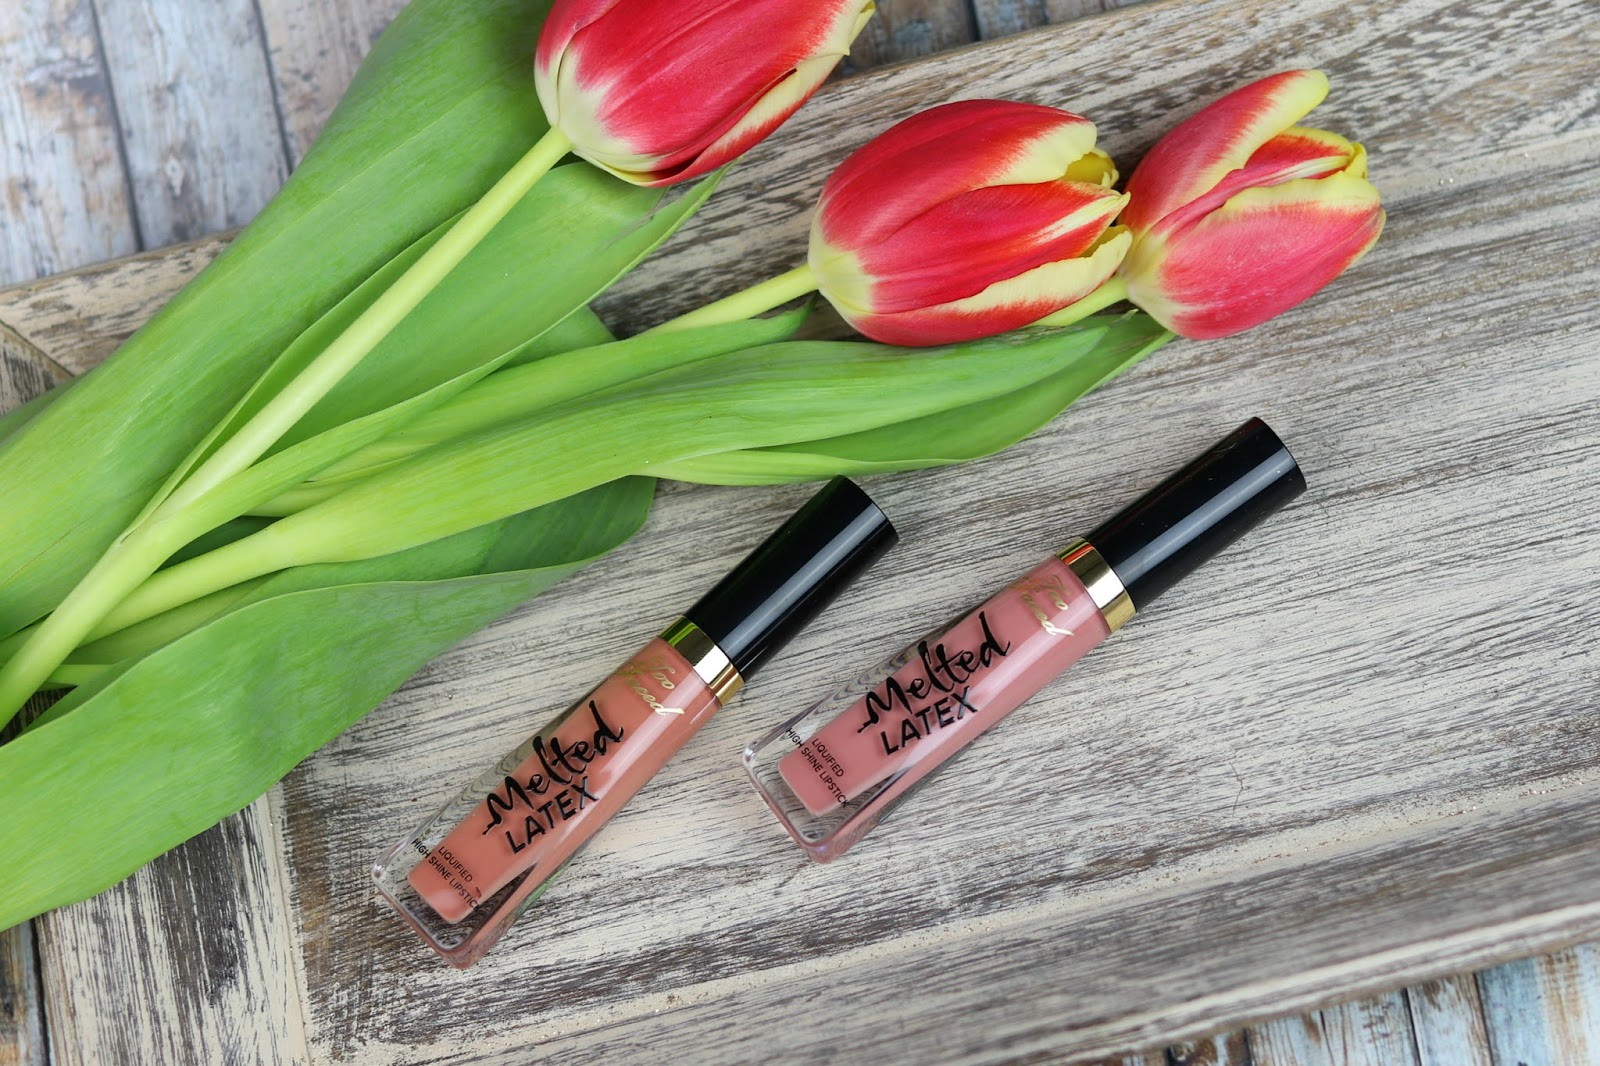 amu, beauty blogger, lidschatten, lidschattenpalette, lippenstift, look, makeup, melted latex liquified high shine lipstick, melted matte, review, sweet peach glow rouge, sweet peach palette, too faced,